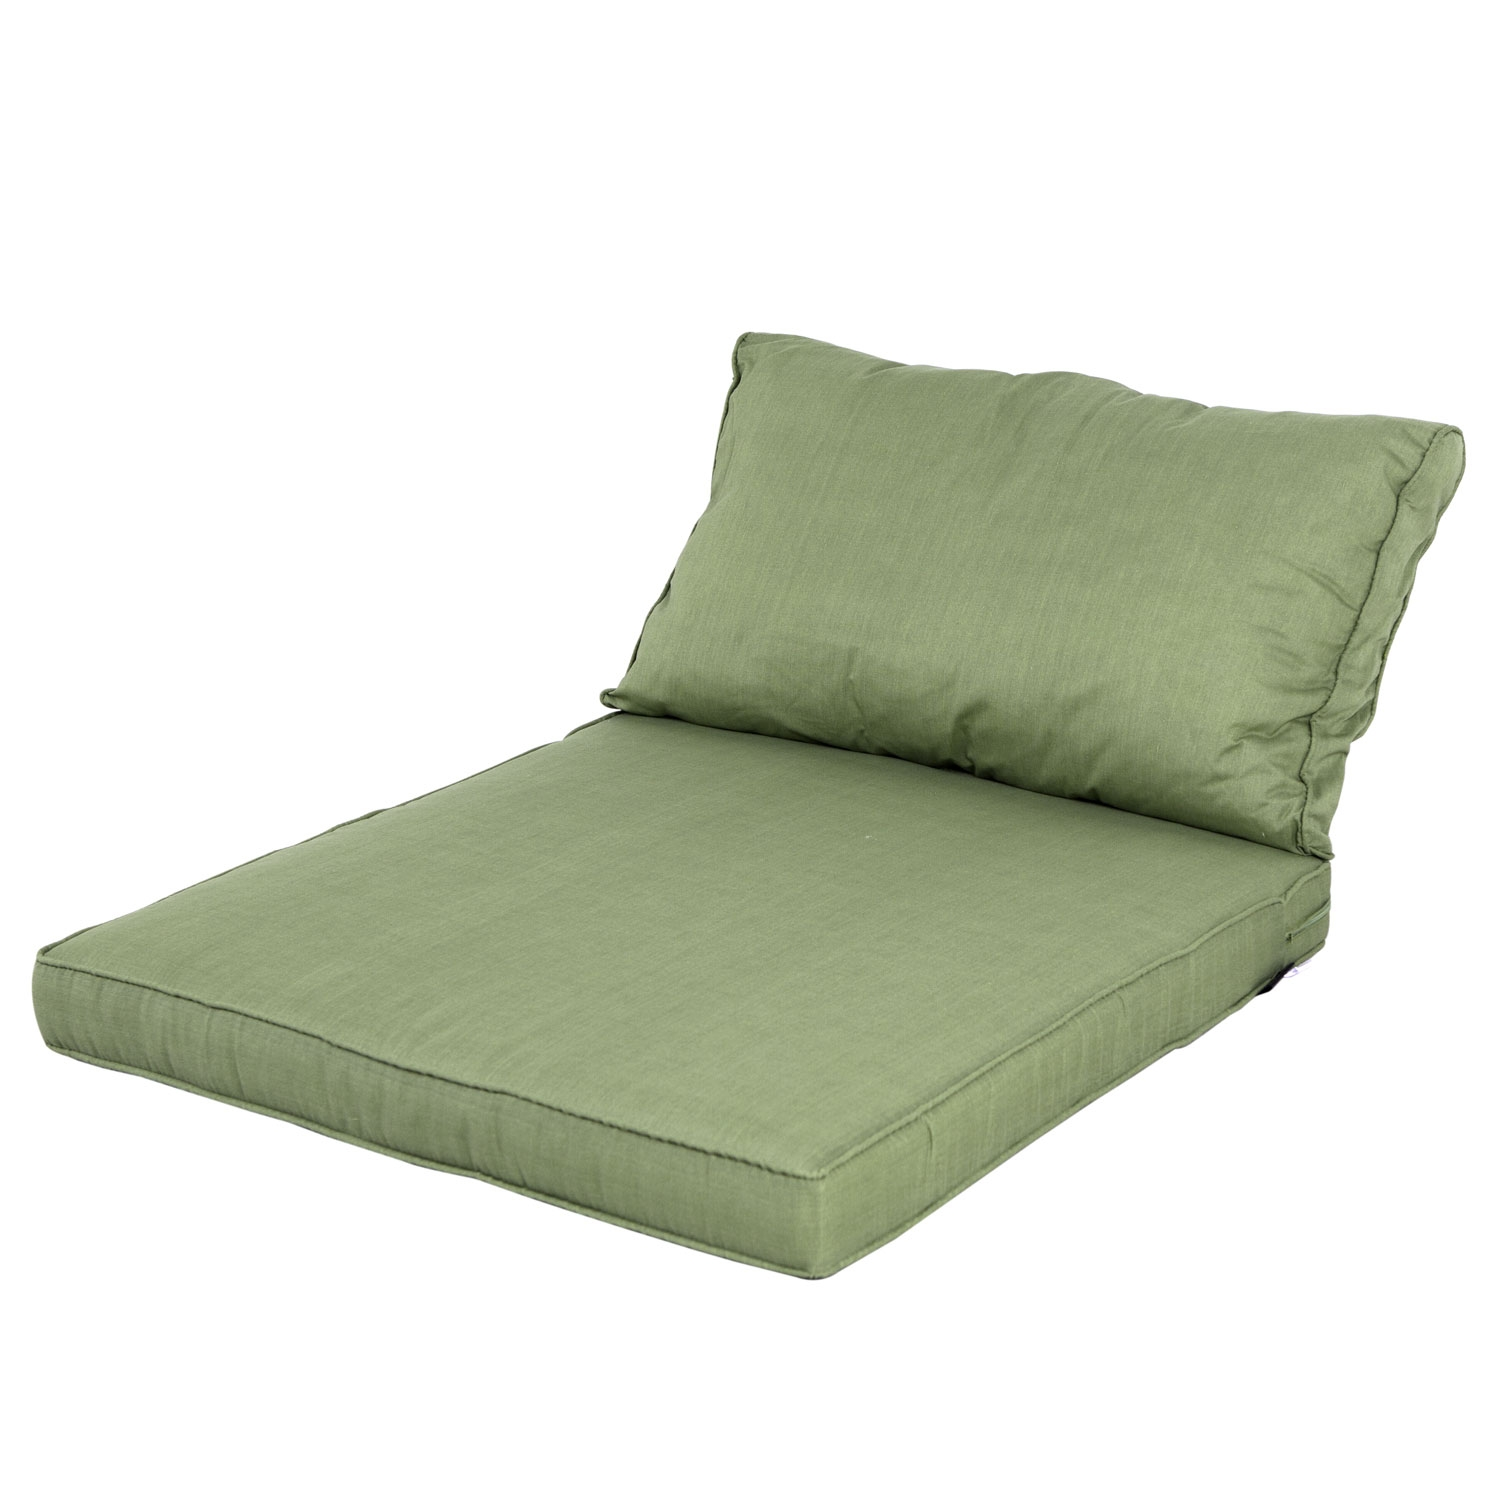 Loungekussen zit- en rug 73x73 - Carré Basic green